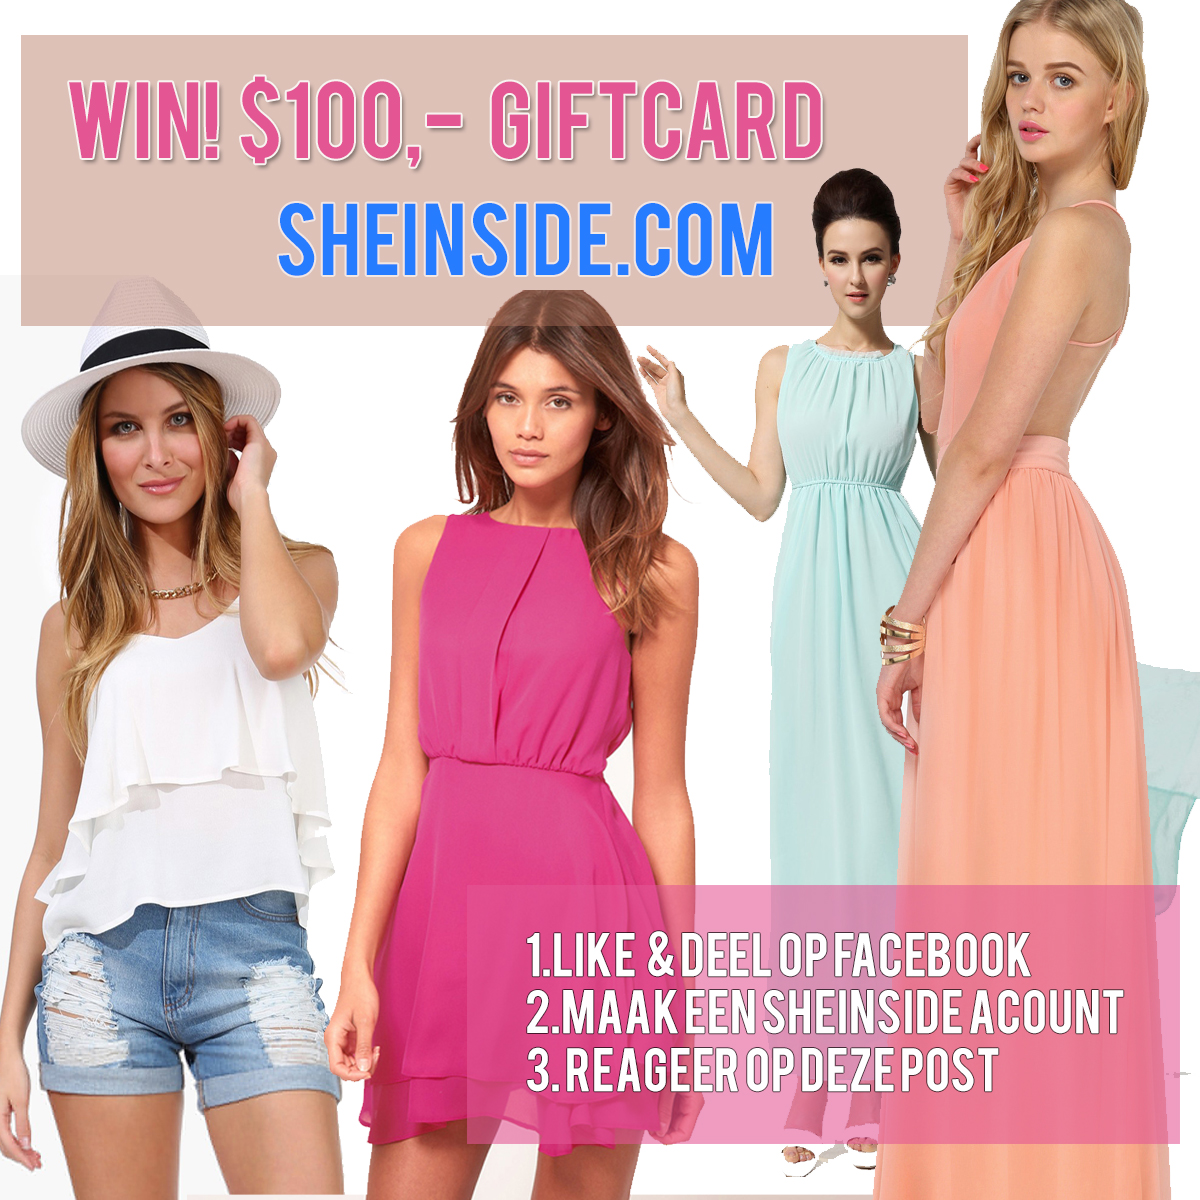 win-sheinside-giftcard-couponcode-sheinside-com Win! Sheinside $100,- Fashion Giftcard